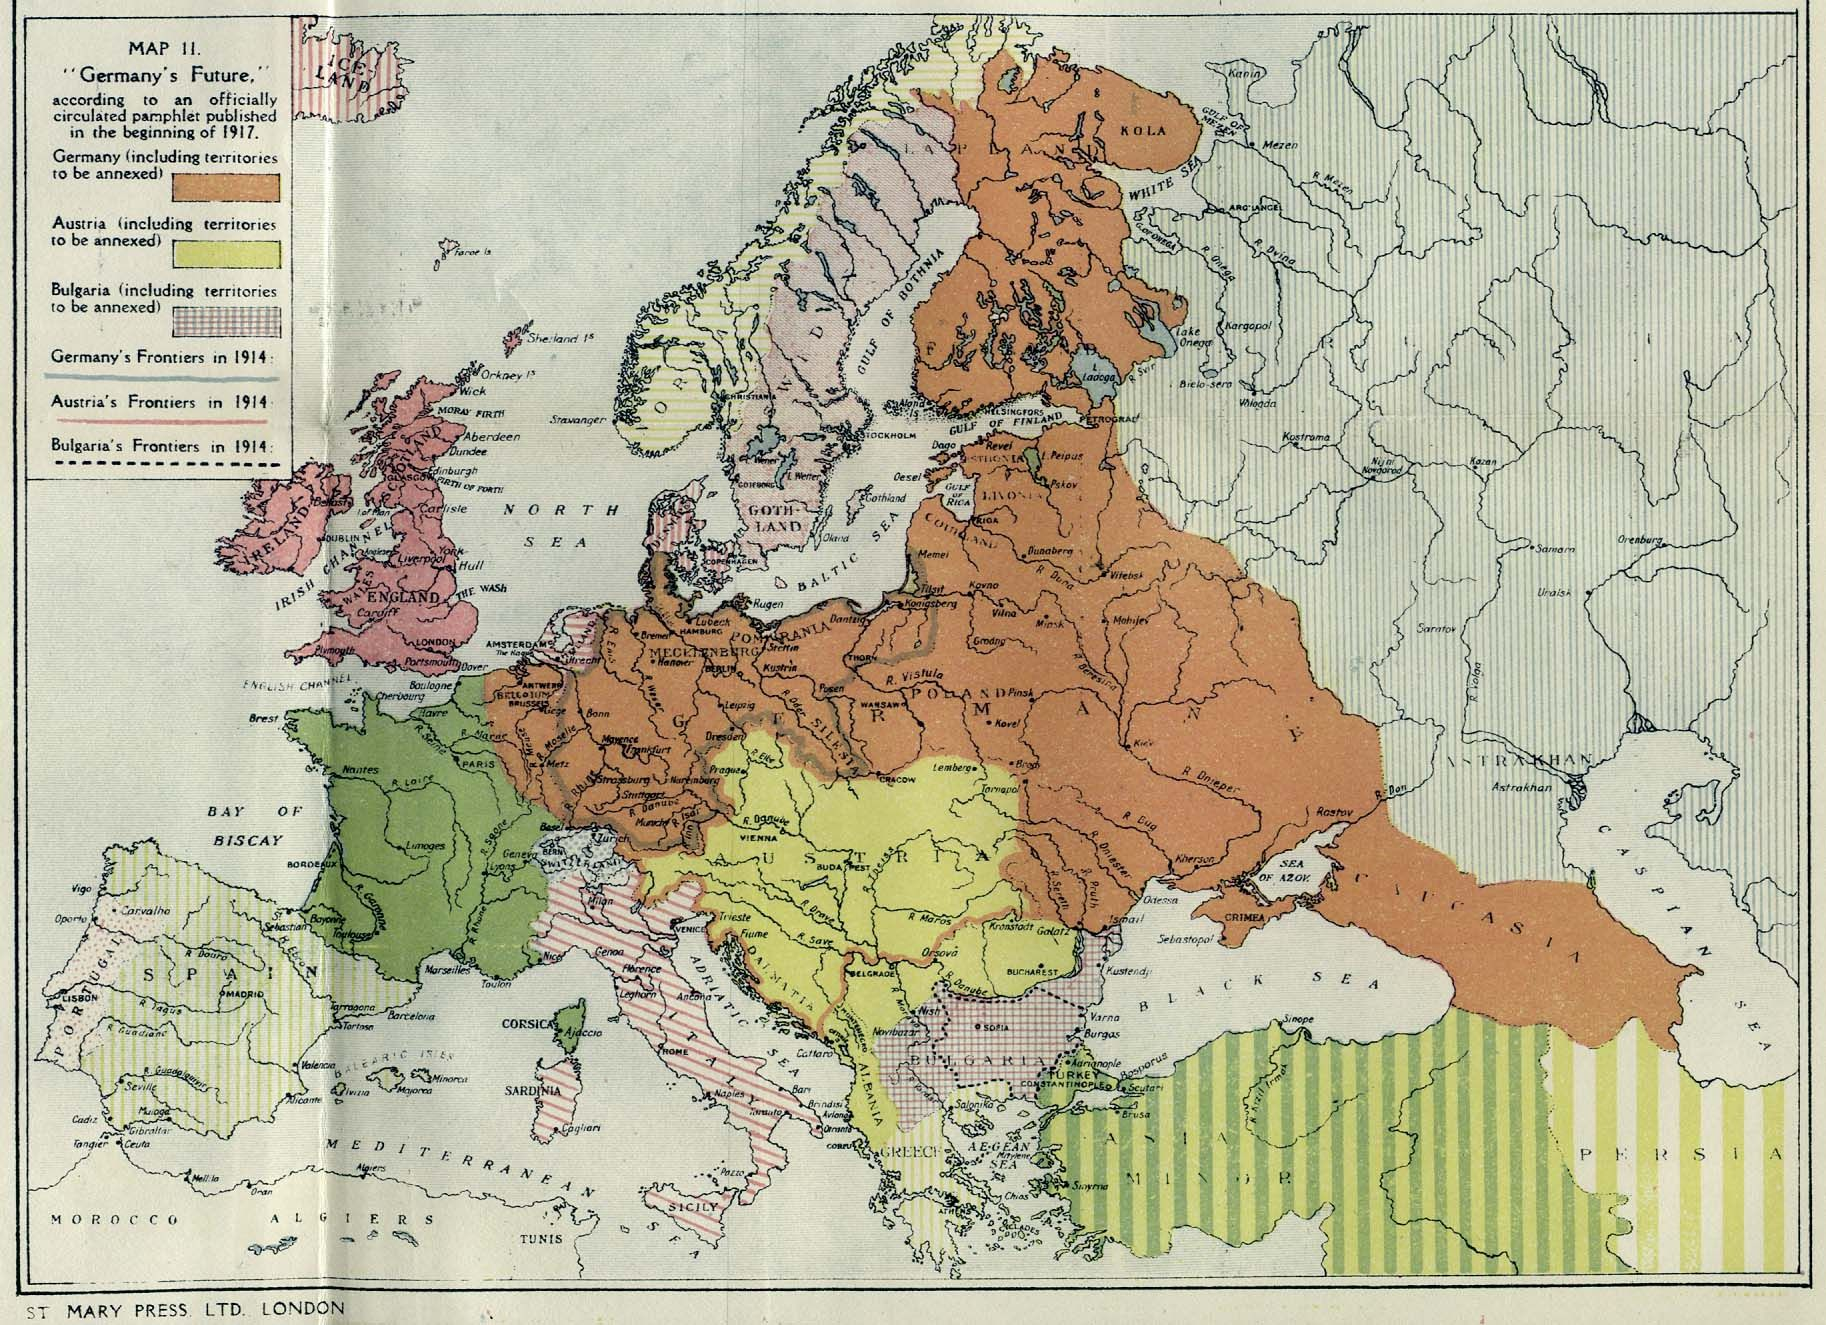 Germany future 1917 Territorial evolution of